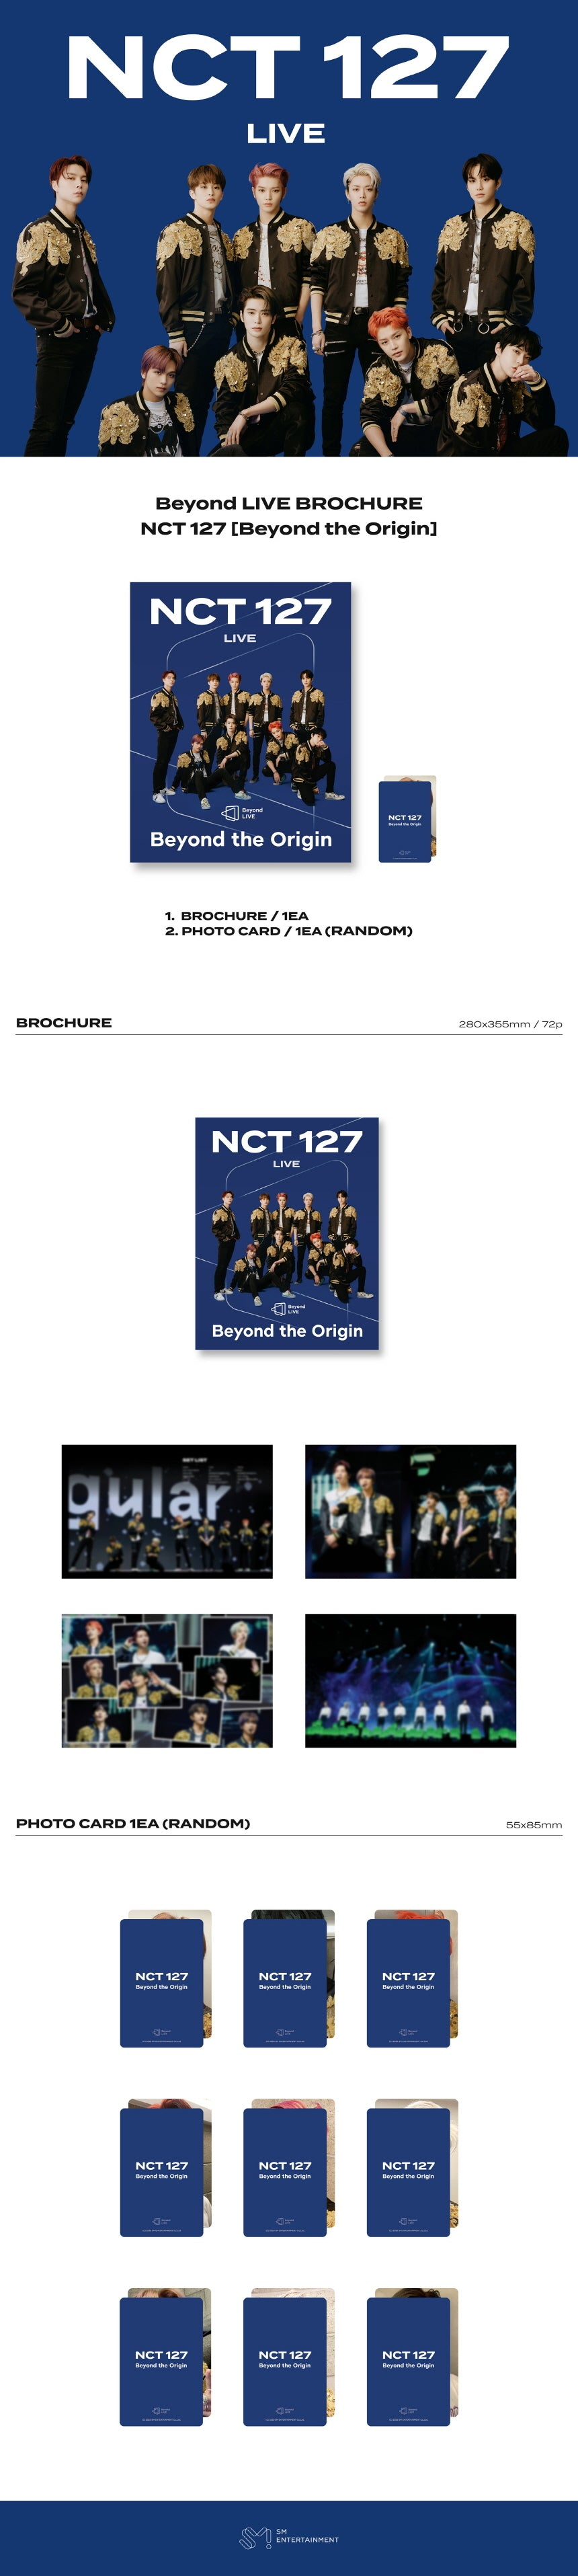 NCT127 UK BEYOND THE FUTURE LIVE PHOTOBOOK